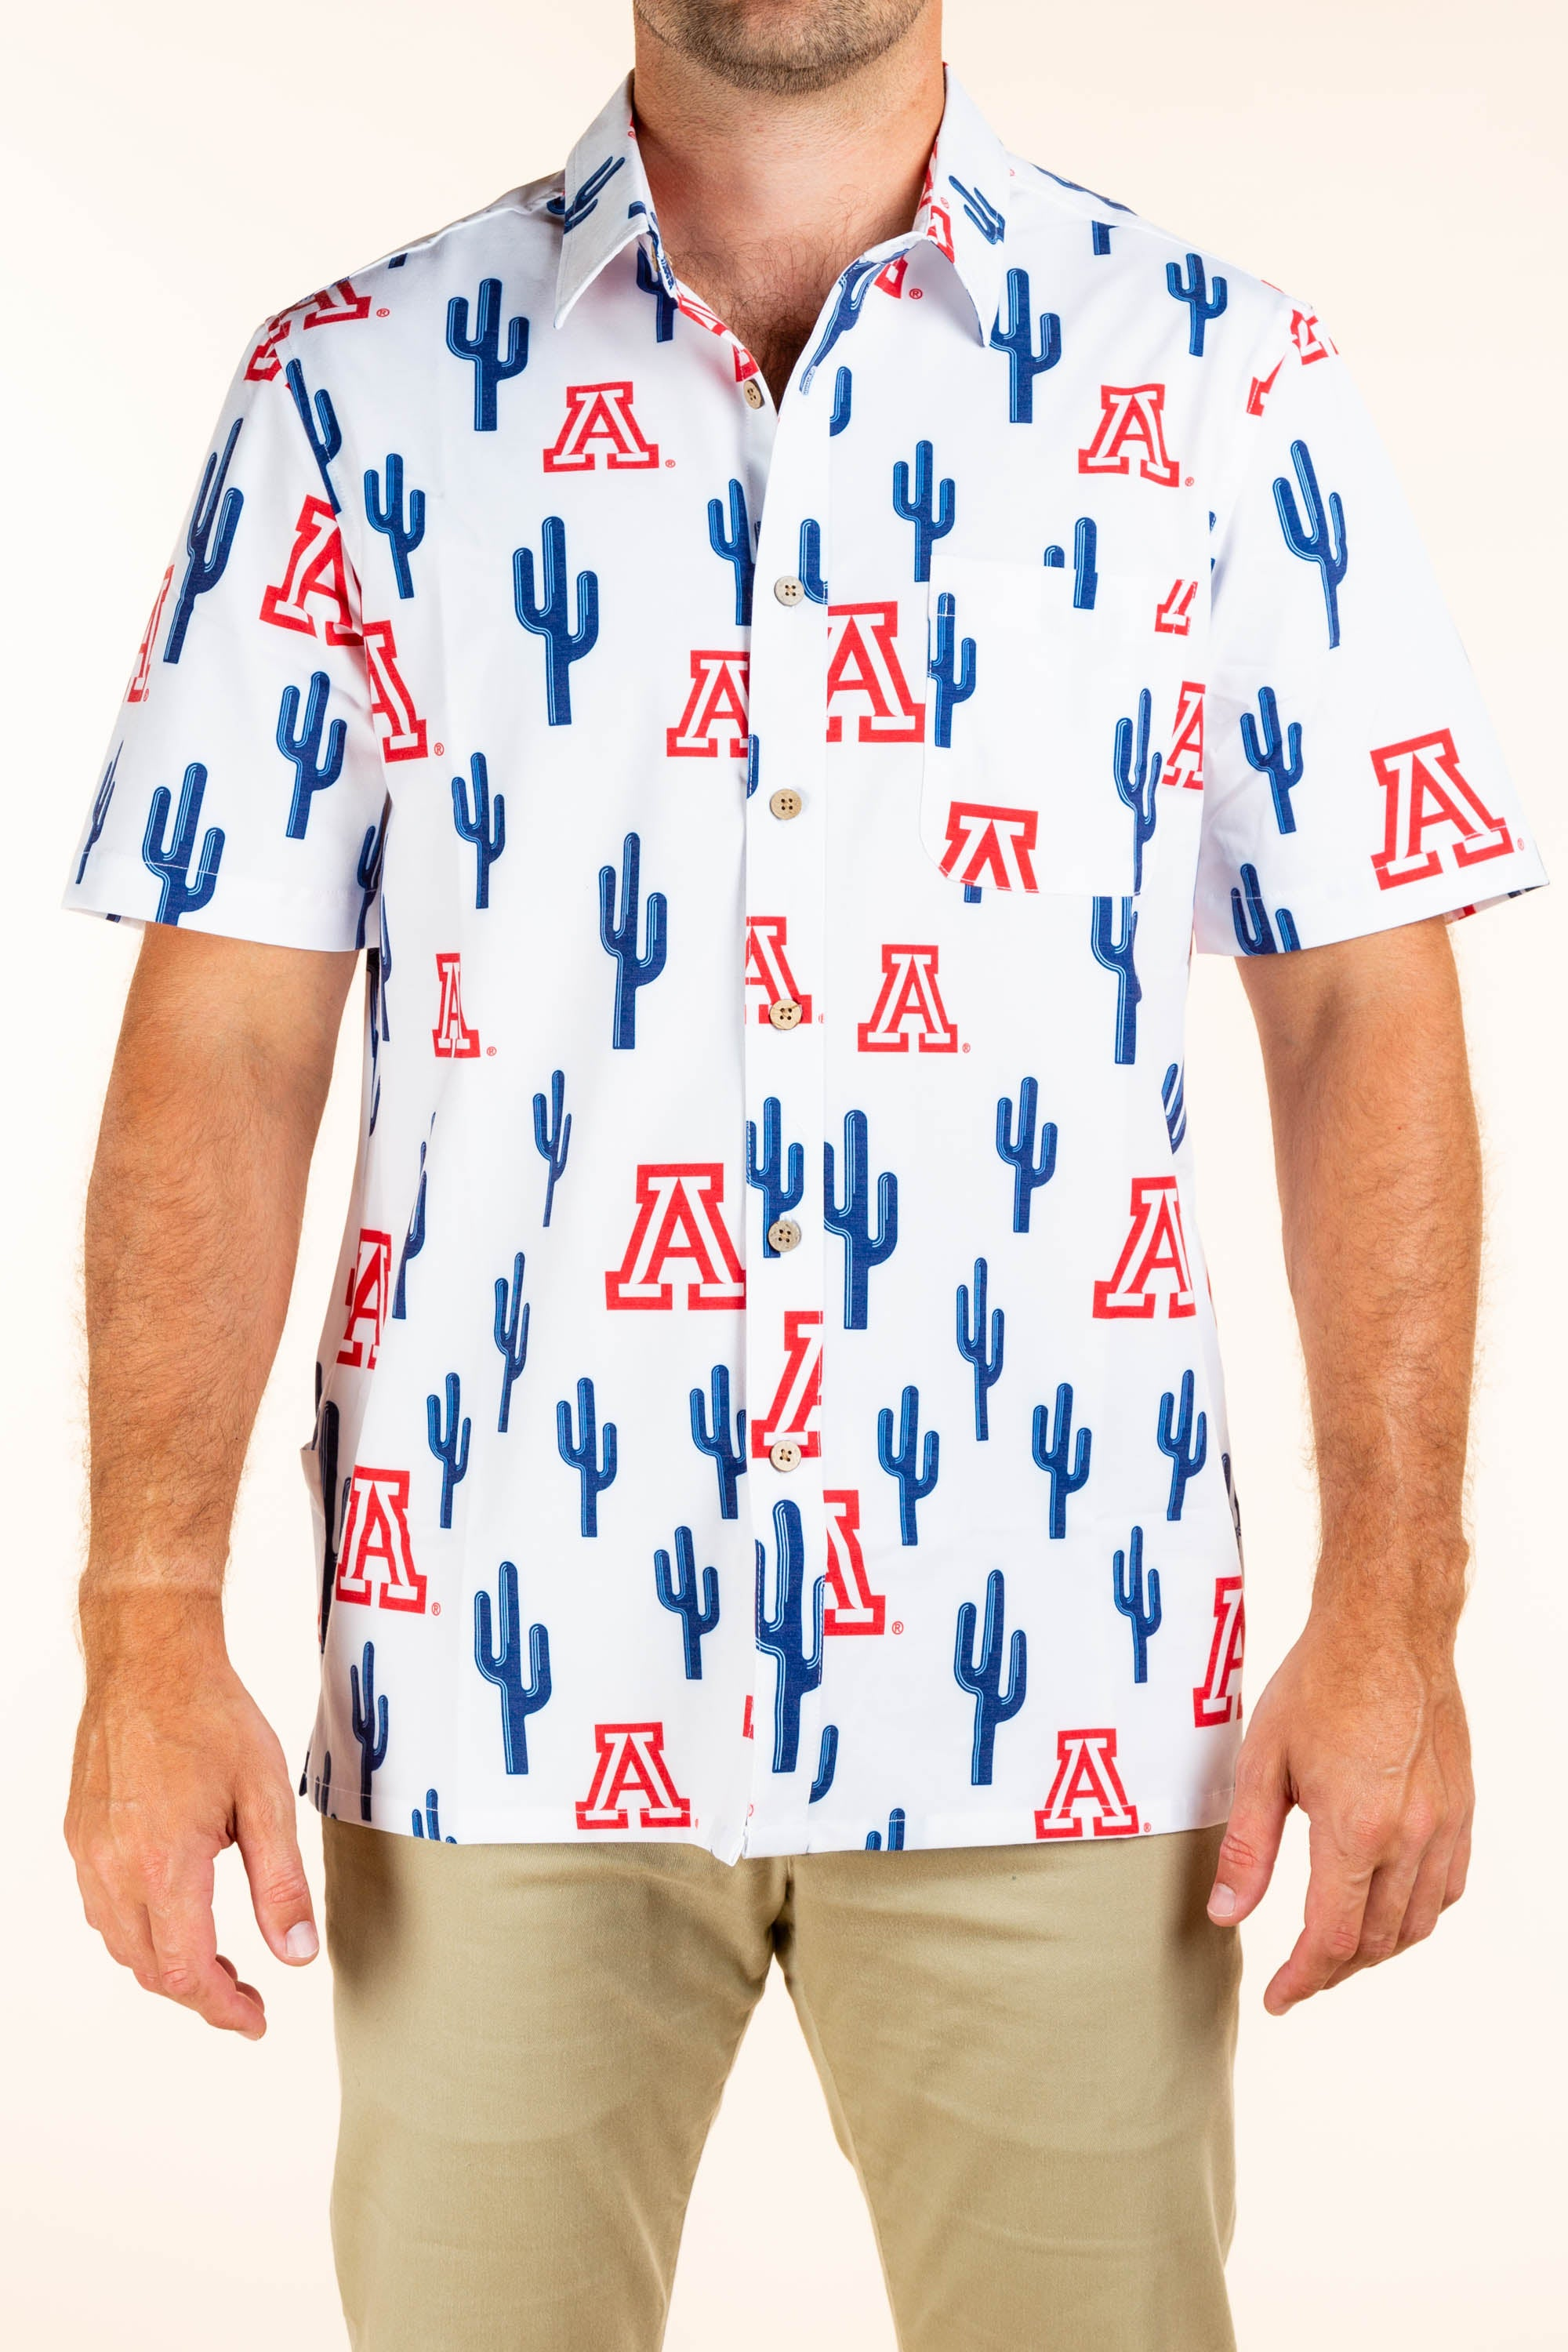 University of Arizona hawaiian